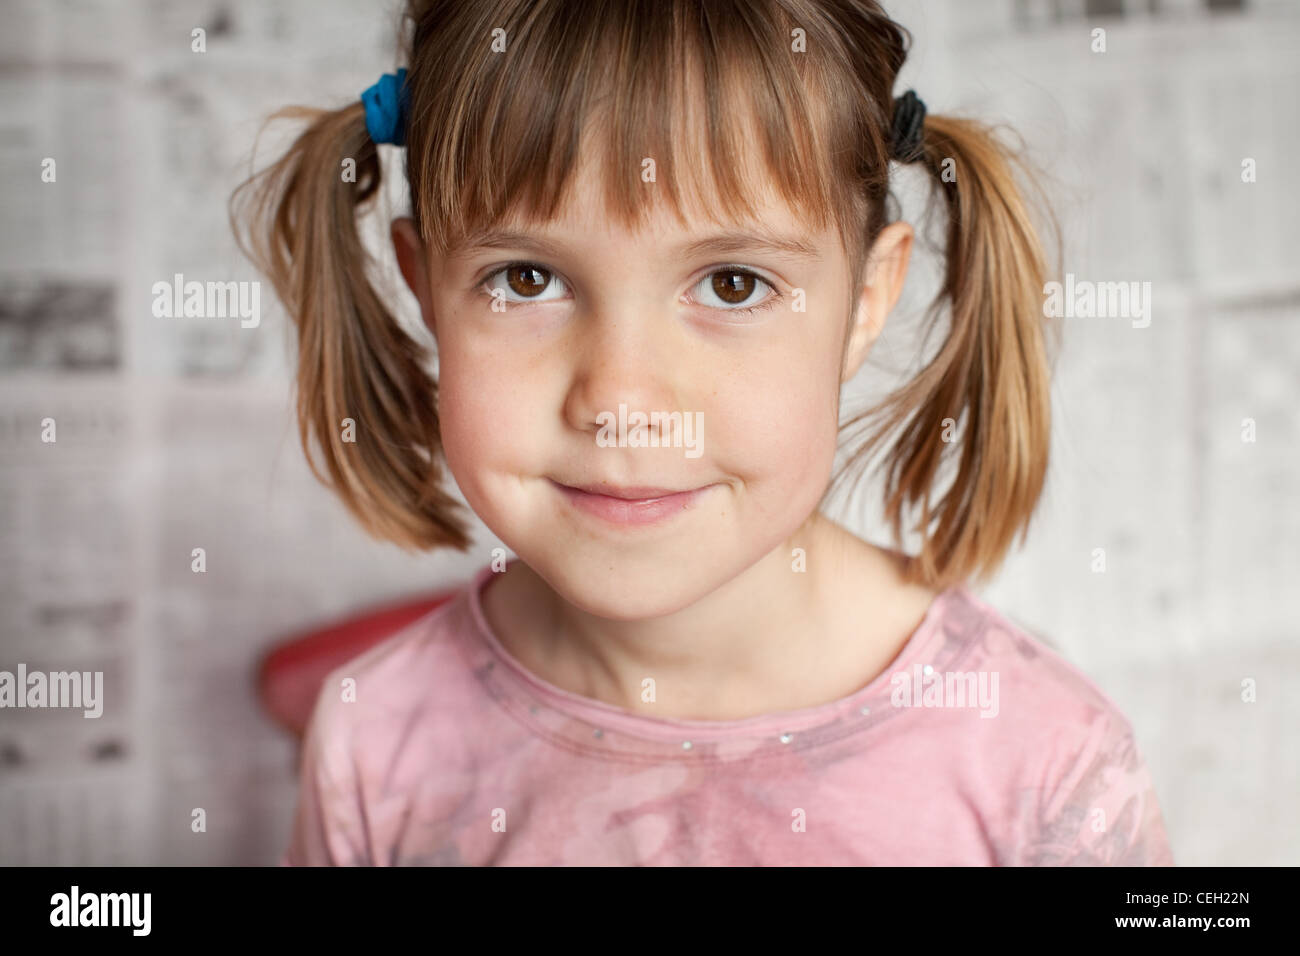 Closeup portrait of young girl smiling for the camera - Stock Image